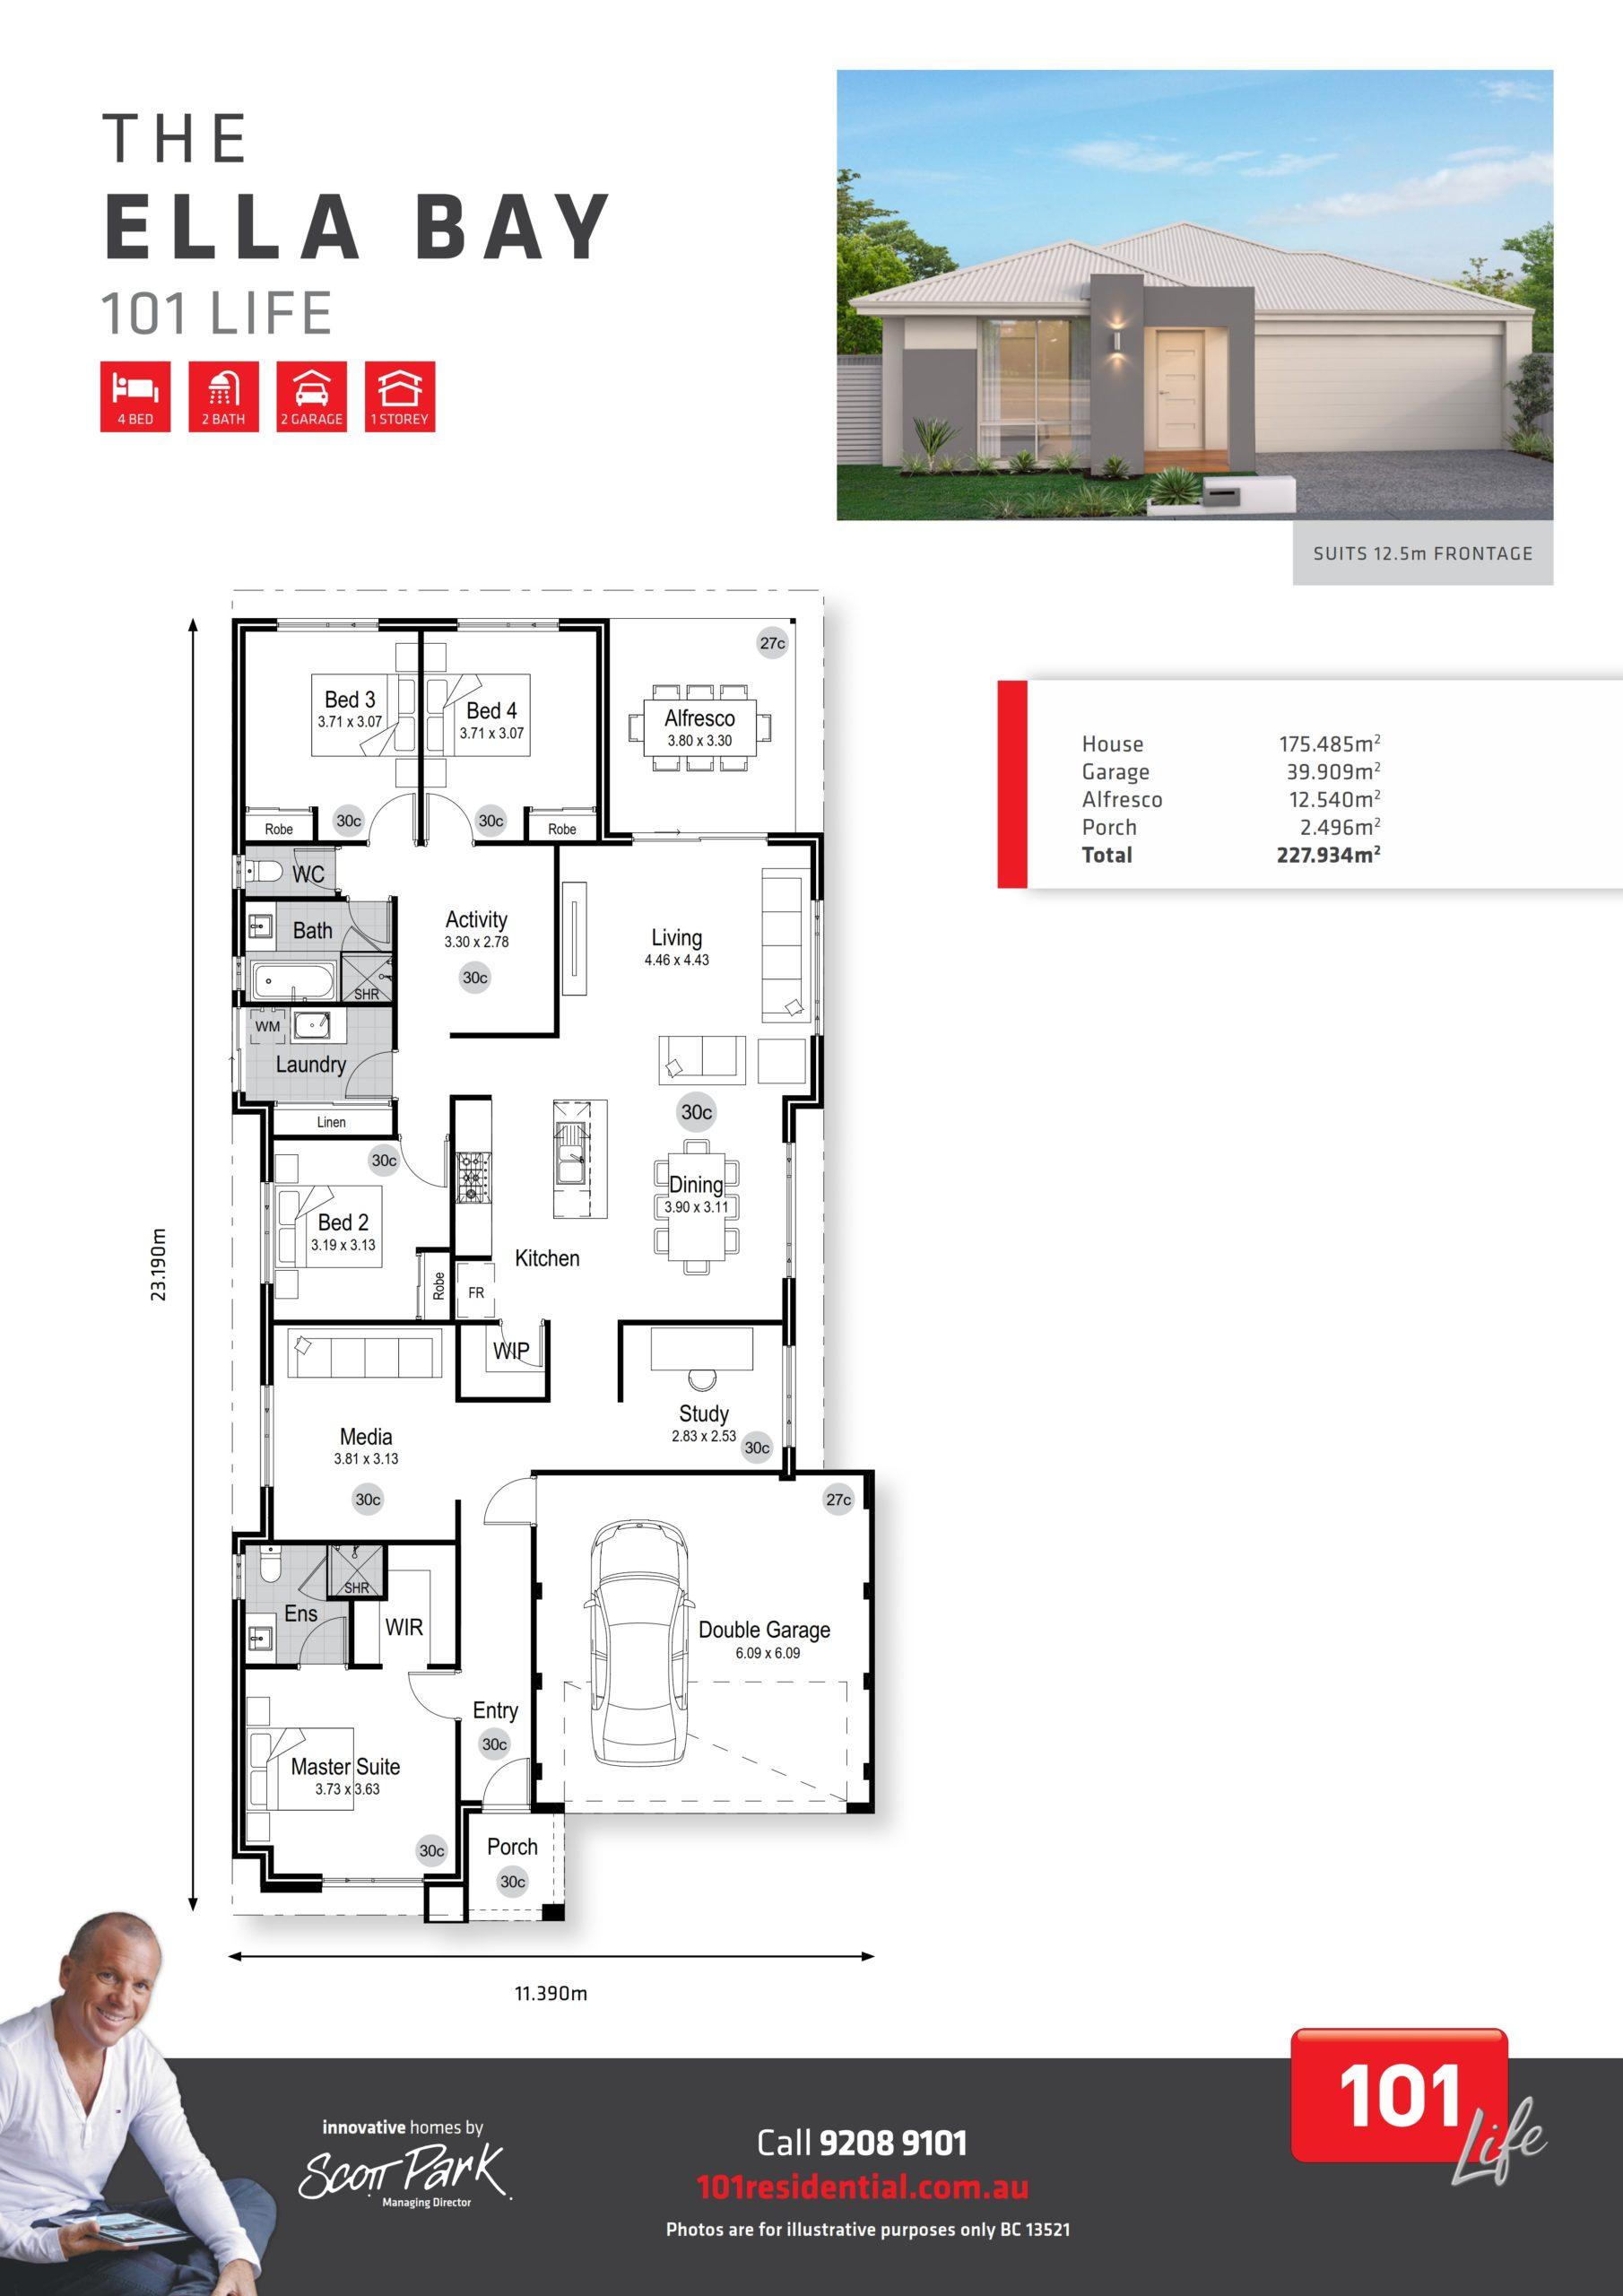 101 Life A3 Floor Plan - Ella Bay WEB_001